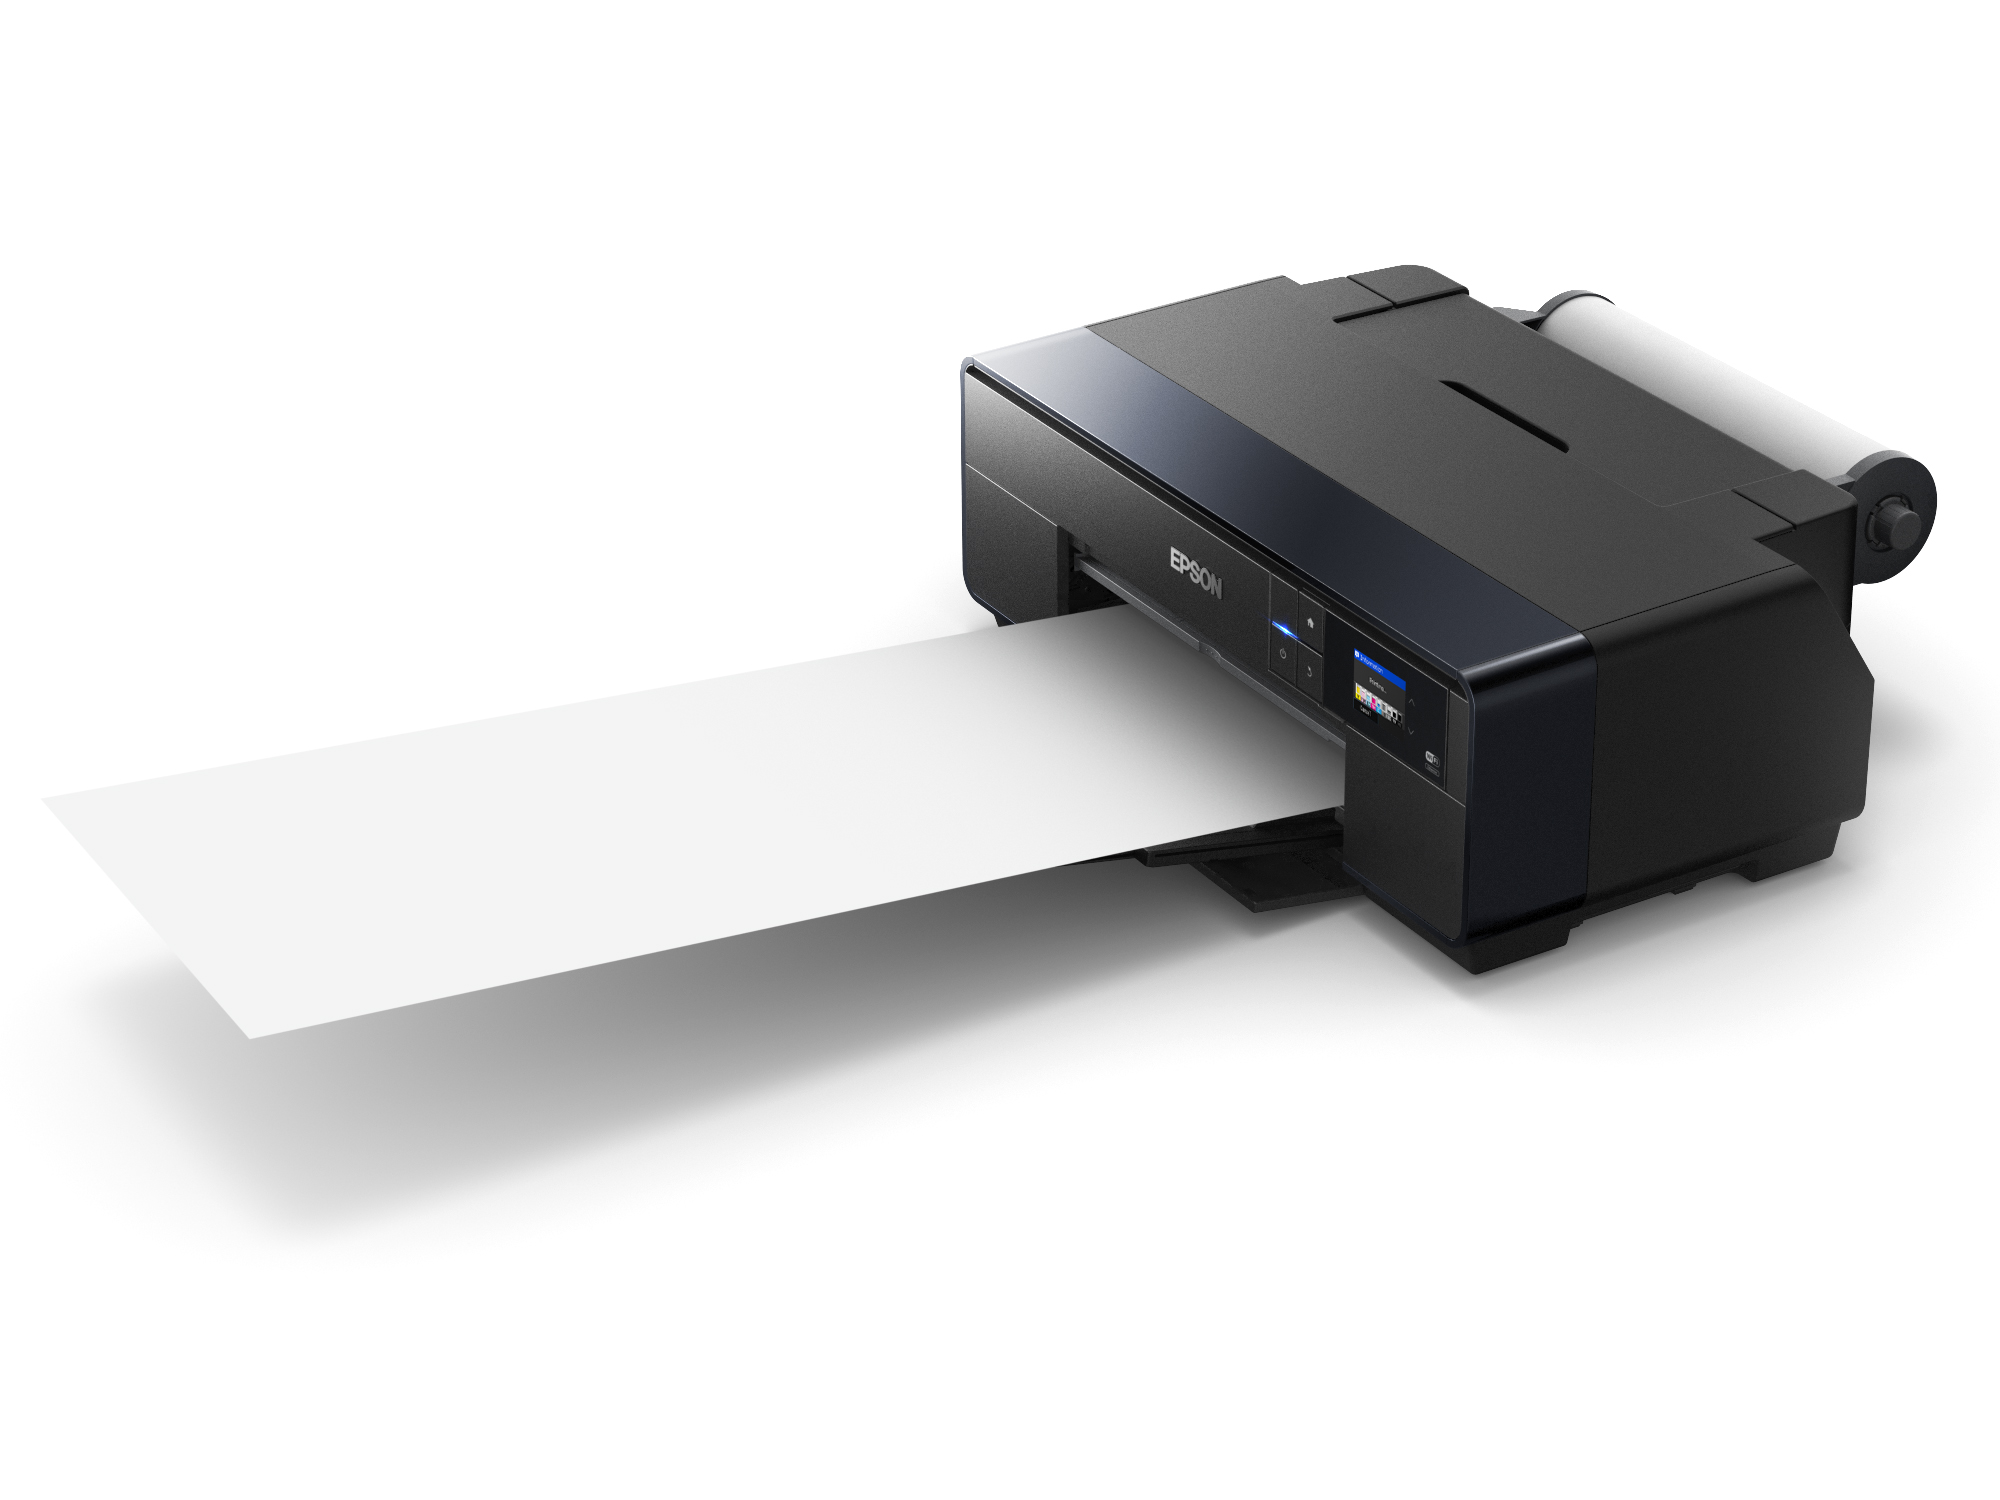 Epson launches A3+ SC-P600 printer with 'industry's highest